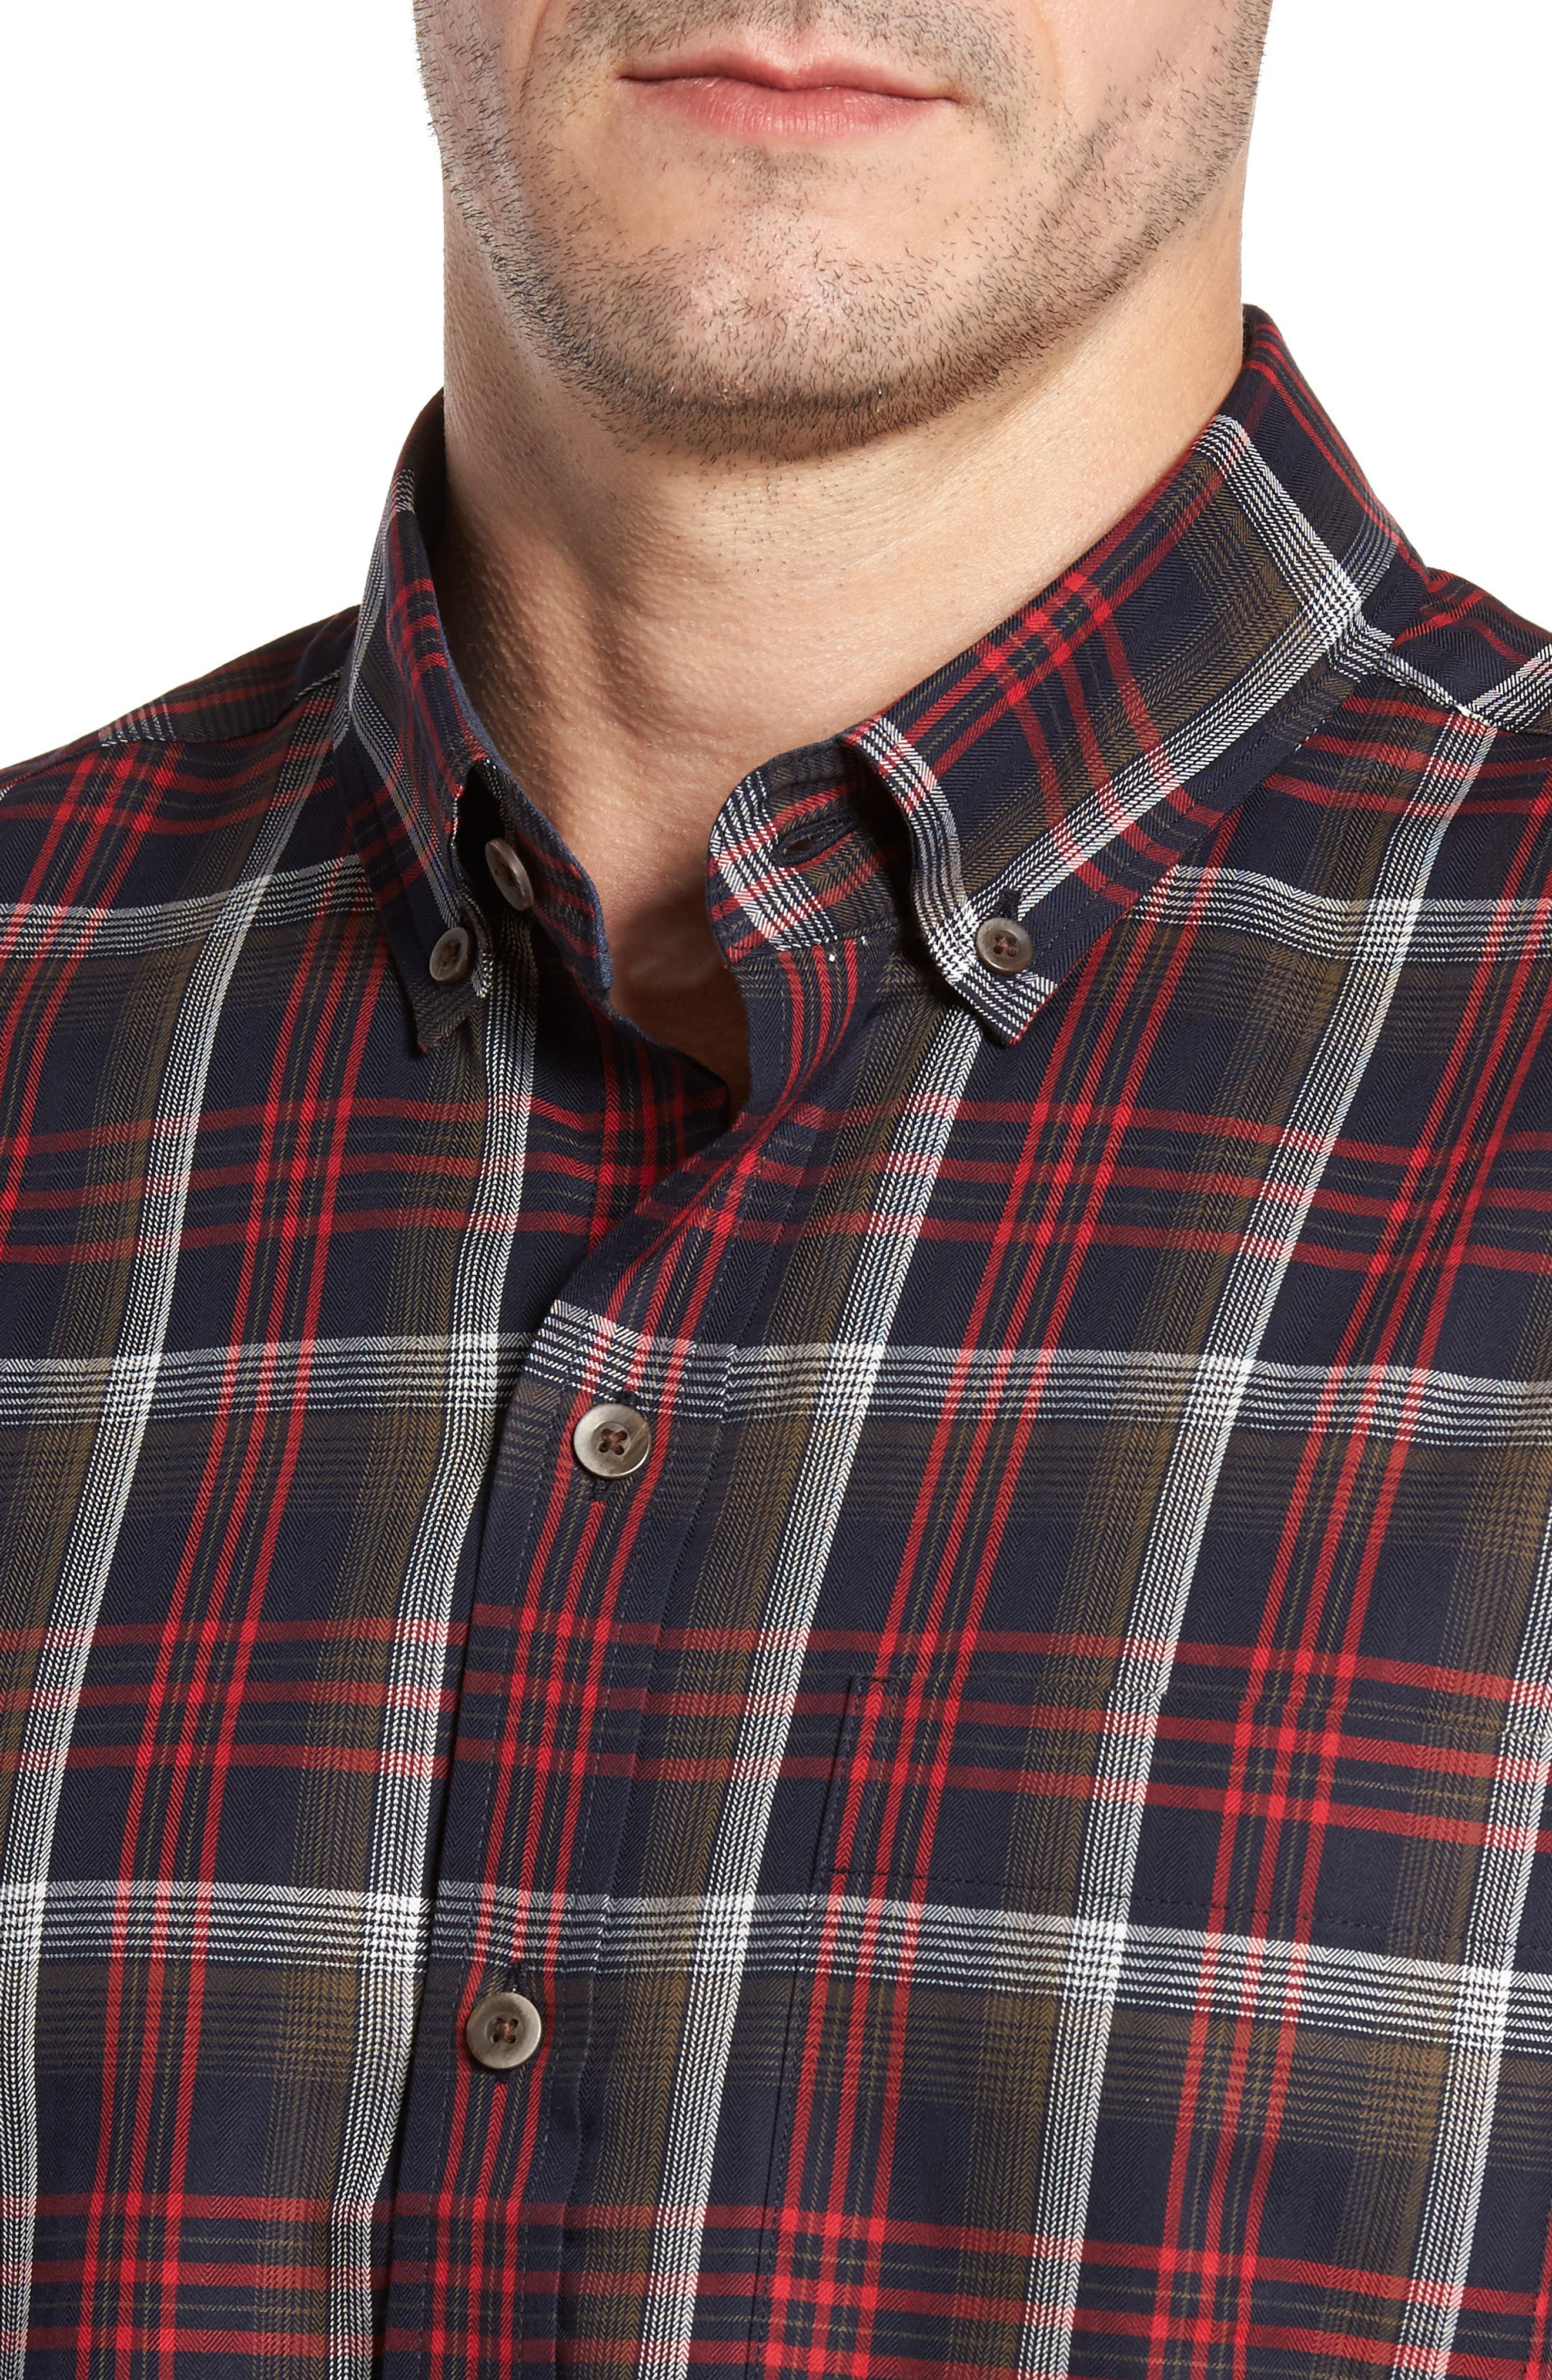 Dry Creek Non-Iron Plaid Sport Shirt,                             Alternate thumbnail 4, color,                             622